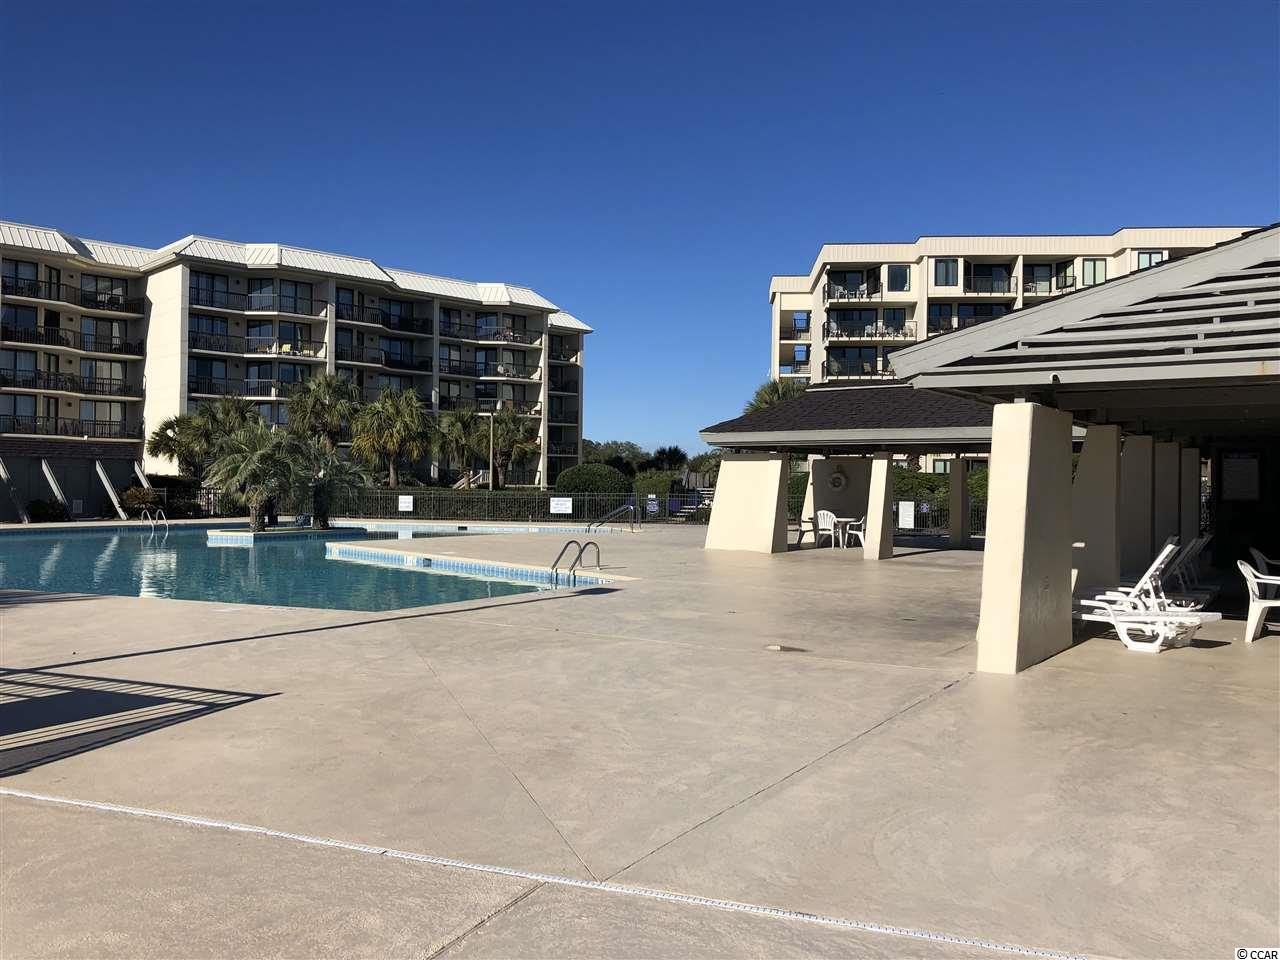 Litchfield has some of the greatest beaches in the world! White sugar sand as far as the eye can see, and no high rises to flood the beach with people, even in the high season! This is a great buy for a 4 bedroom ocean front condo at Litchfield By The Sea. The end unit allows for a great private balcony with wonderful views of the ocean and dunes. Pool, tennis courts, private beach access are only some of the advantages to this community. Close to great restaurants, 30 minutes to the Myrtle Beach Airport, 10 minutes to the Murrells Inlet Marsh Walk and 1.5 hours to Charleston.  Call to schedule a showing today!